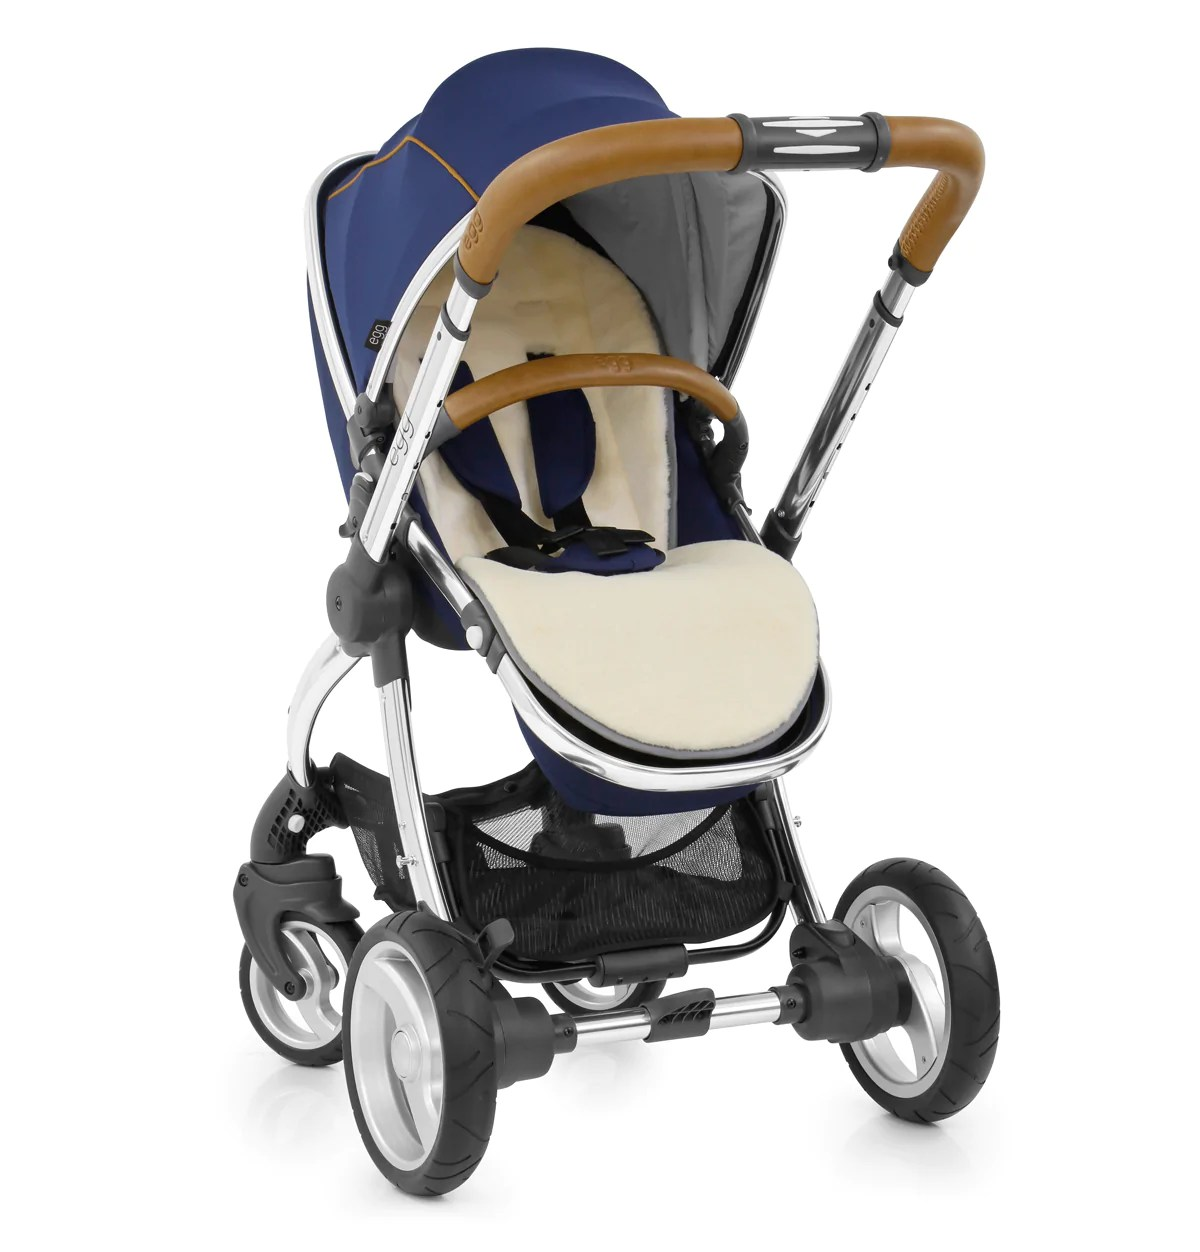 Baby Regal Egg Stroller Regal Navy Newbie And Me Online Baby Store